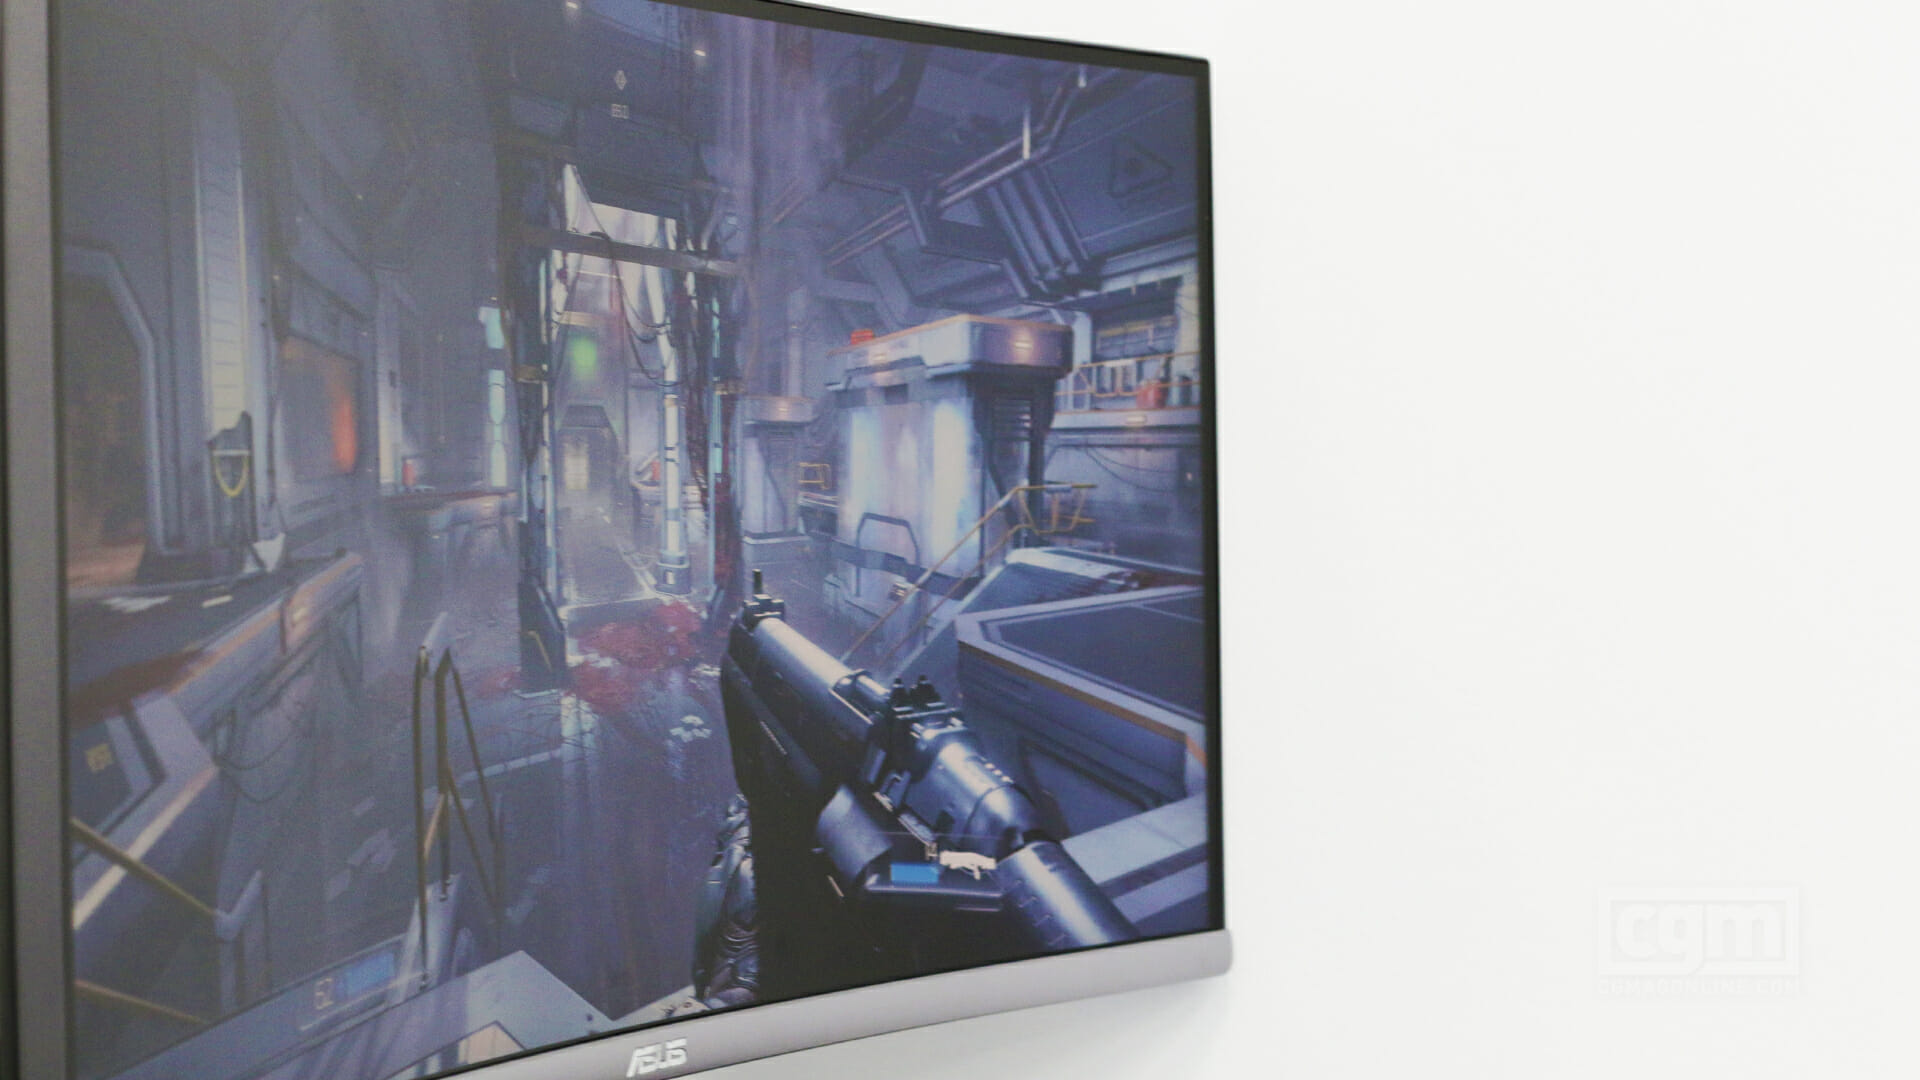 Asus Designo Mx34Vq Curved Monitor Review 5